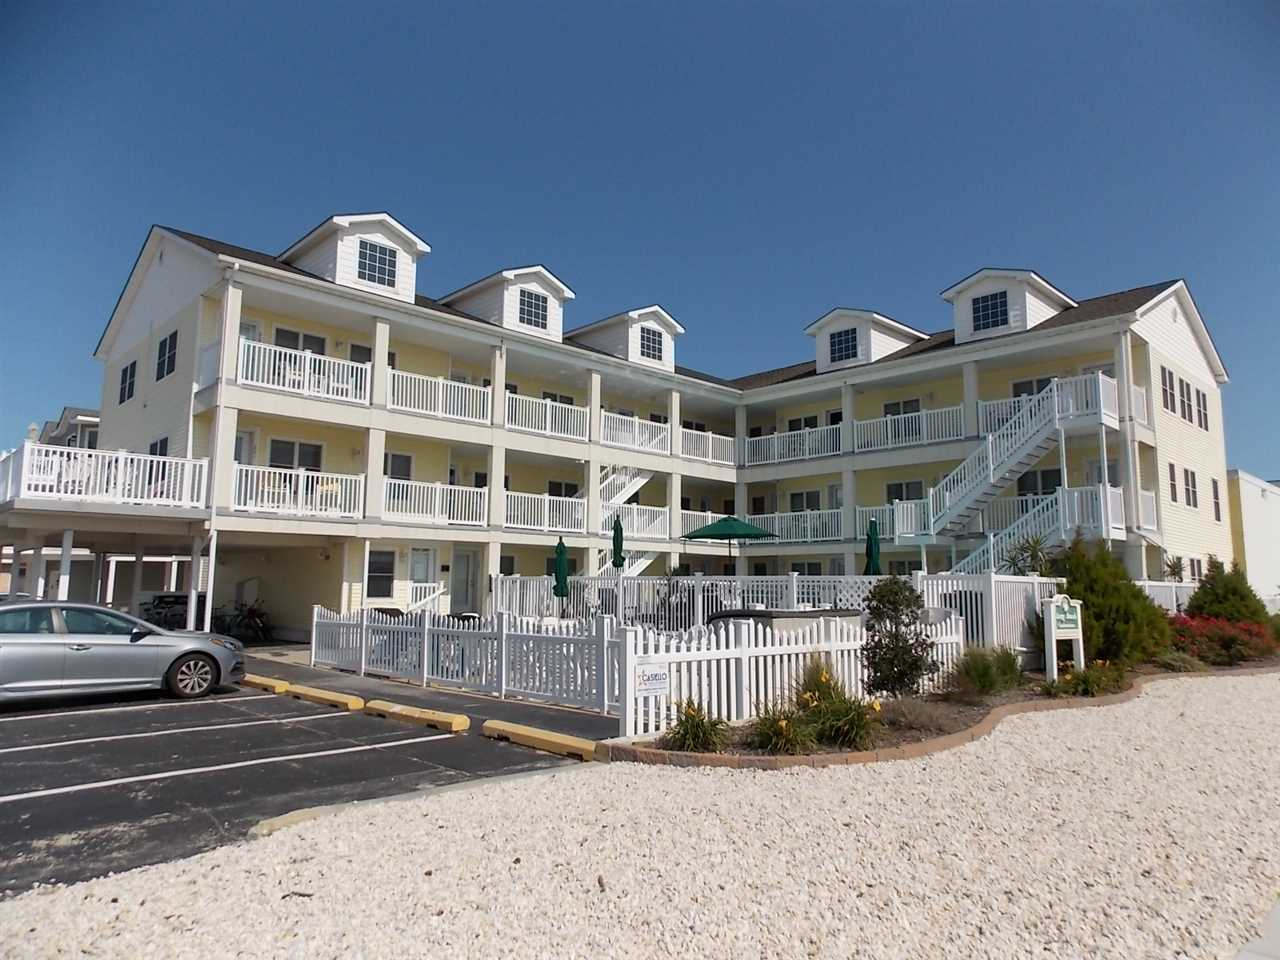 539, Unit 305 9th, North Wildwood